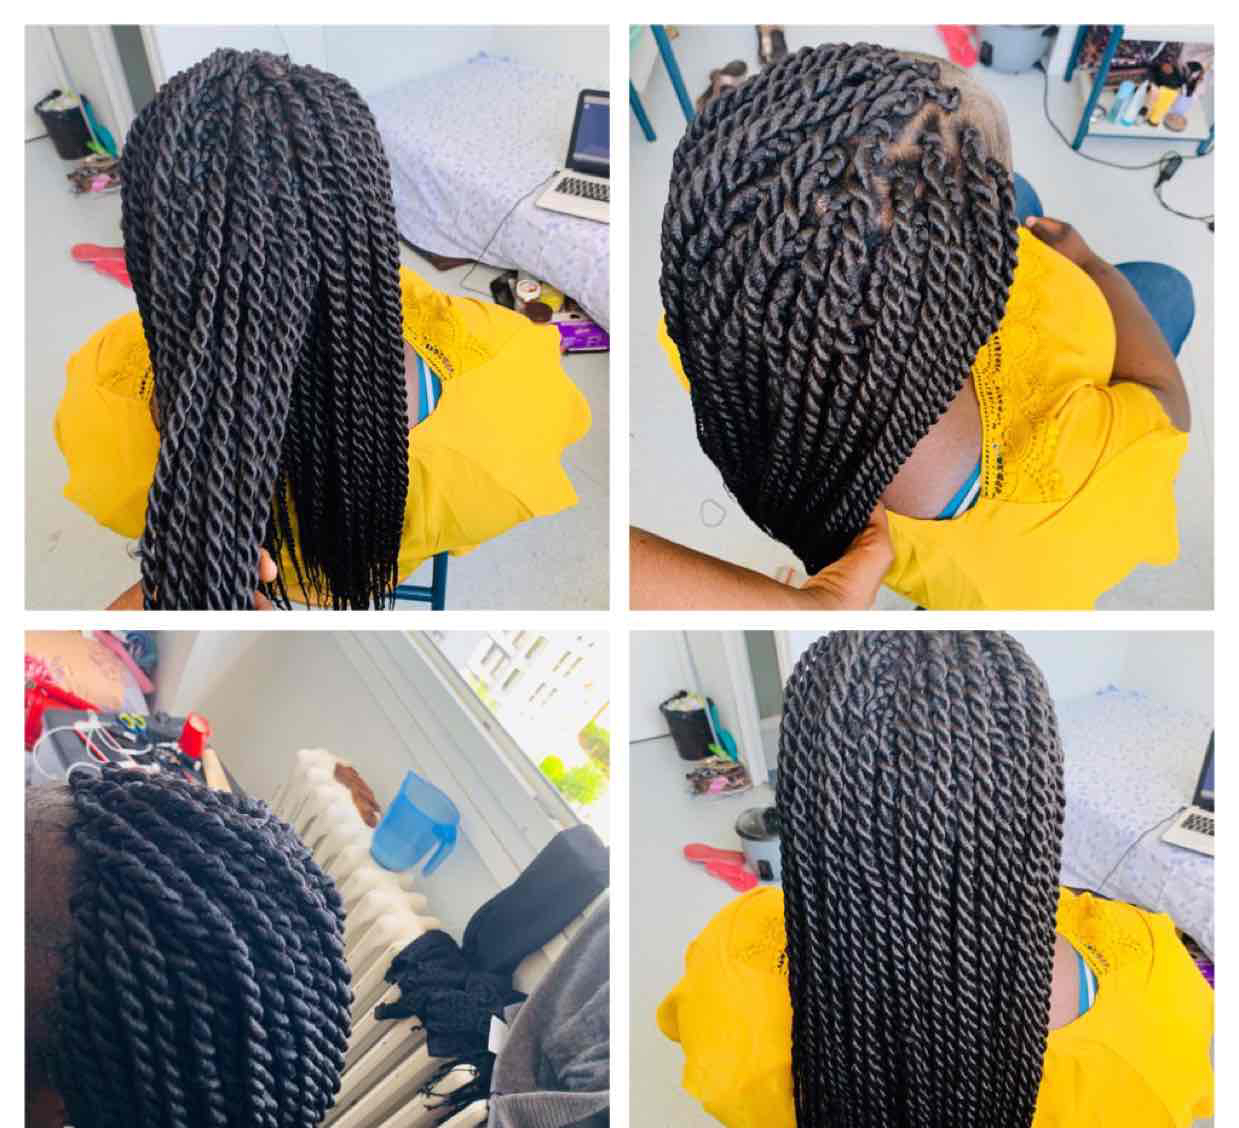 salon de coiffure afro tresse tresses box braids crochet braids vanilles tissages paris 75 77 78 91 92 93 94 95 PZPCQKBI